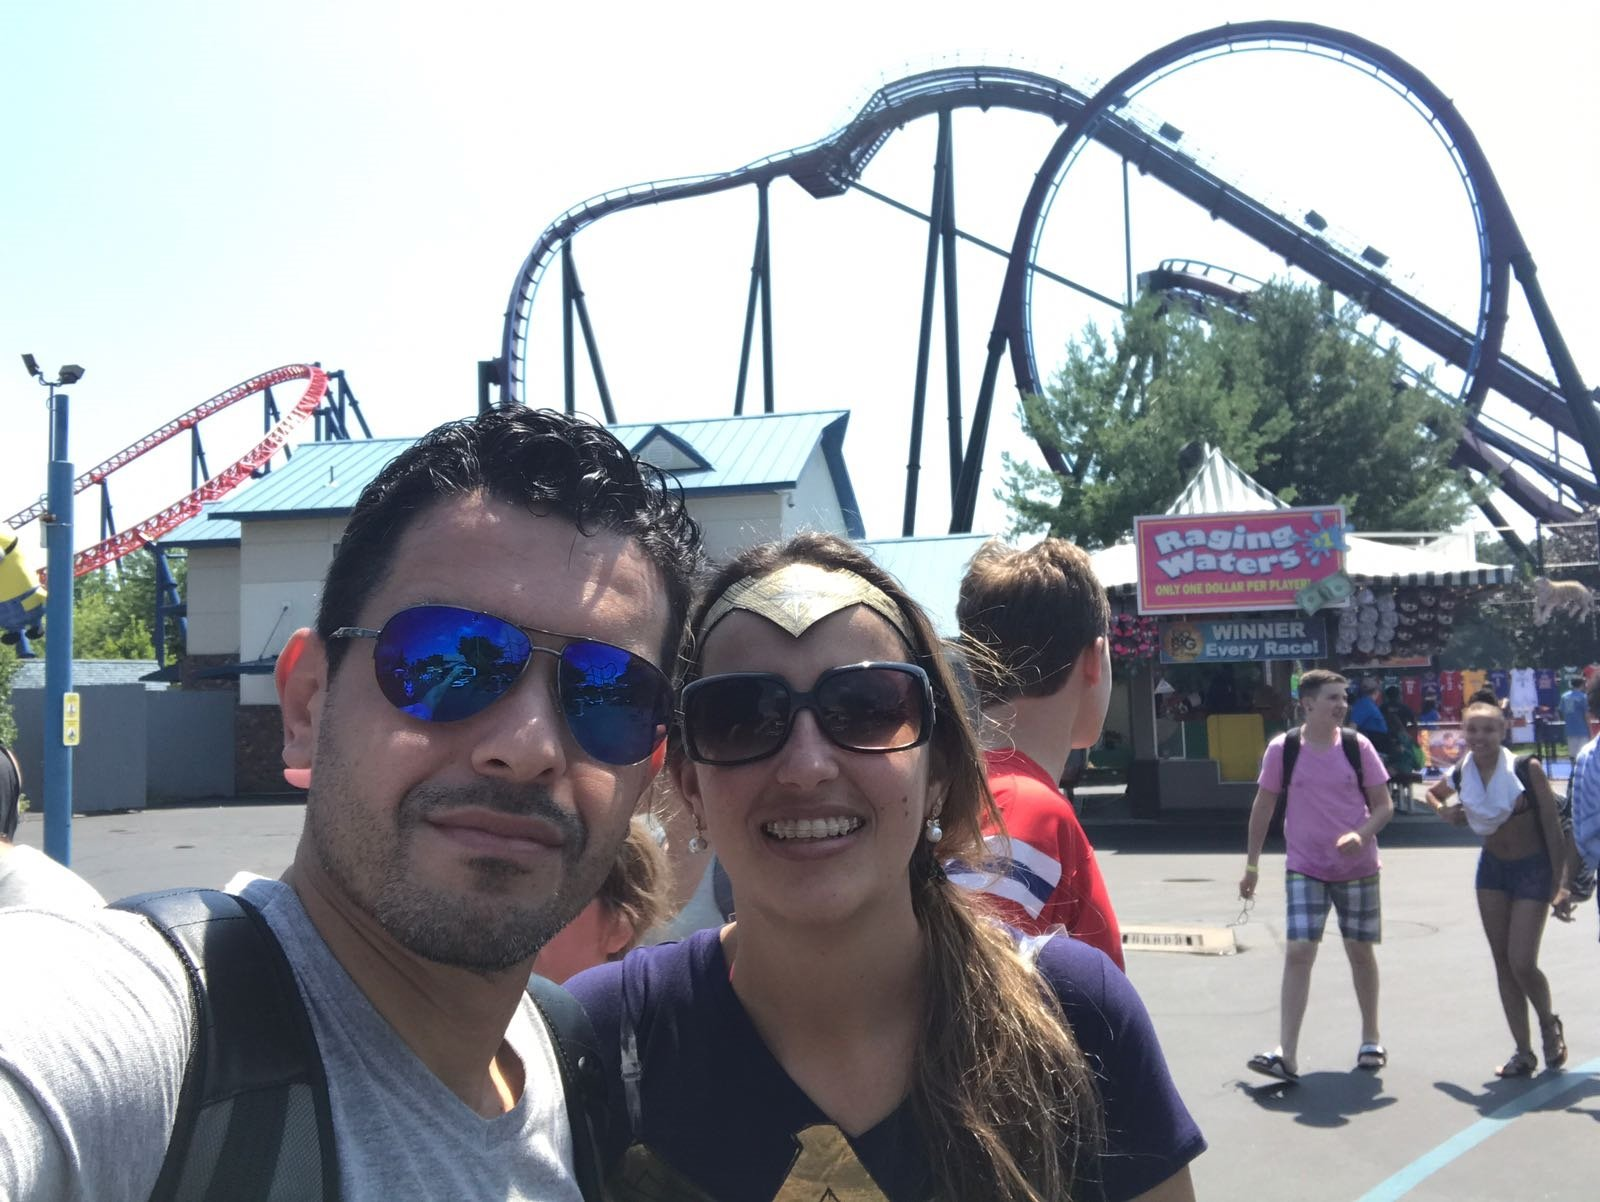 parque Six flags new England